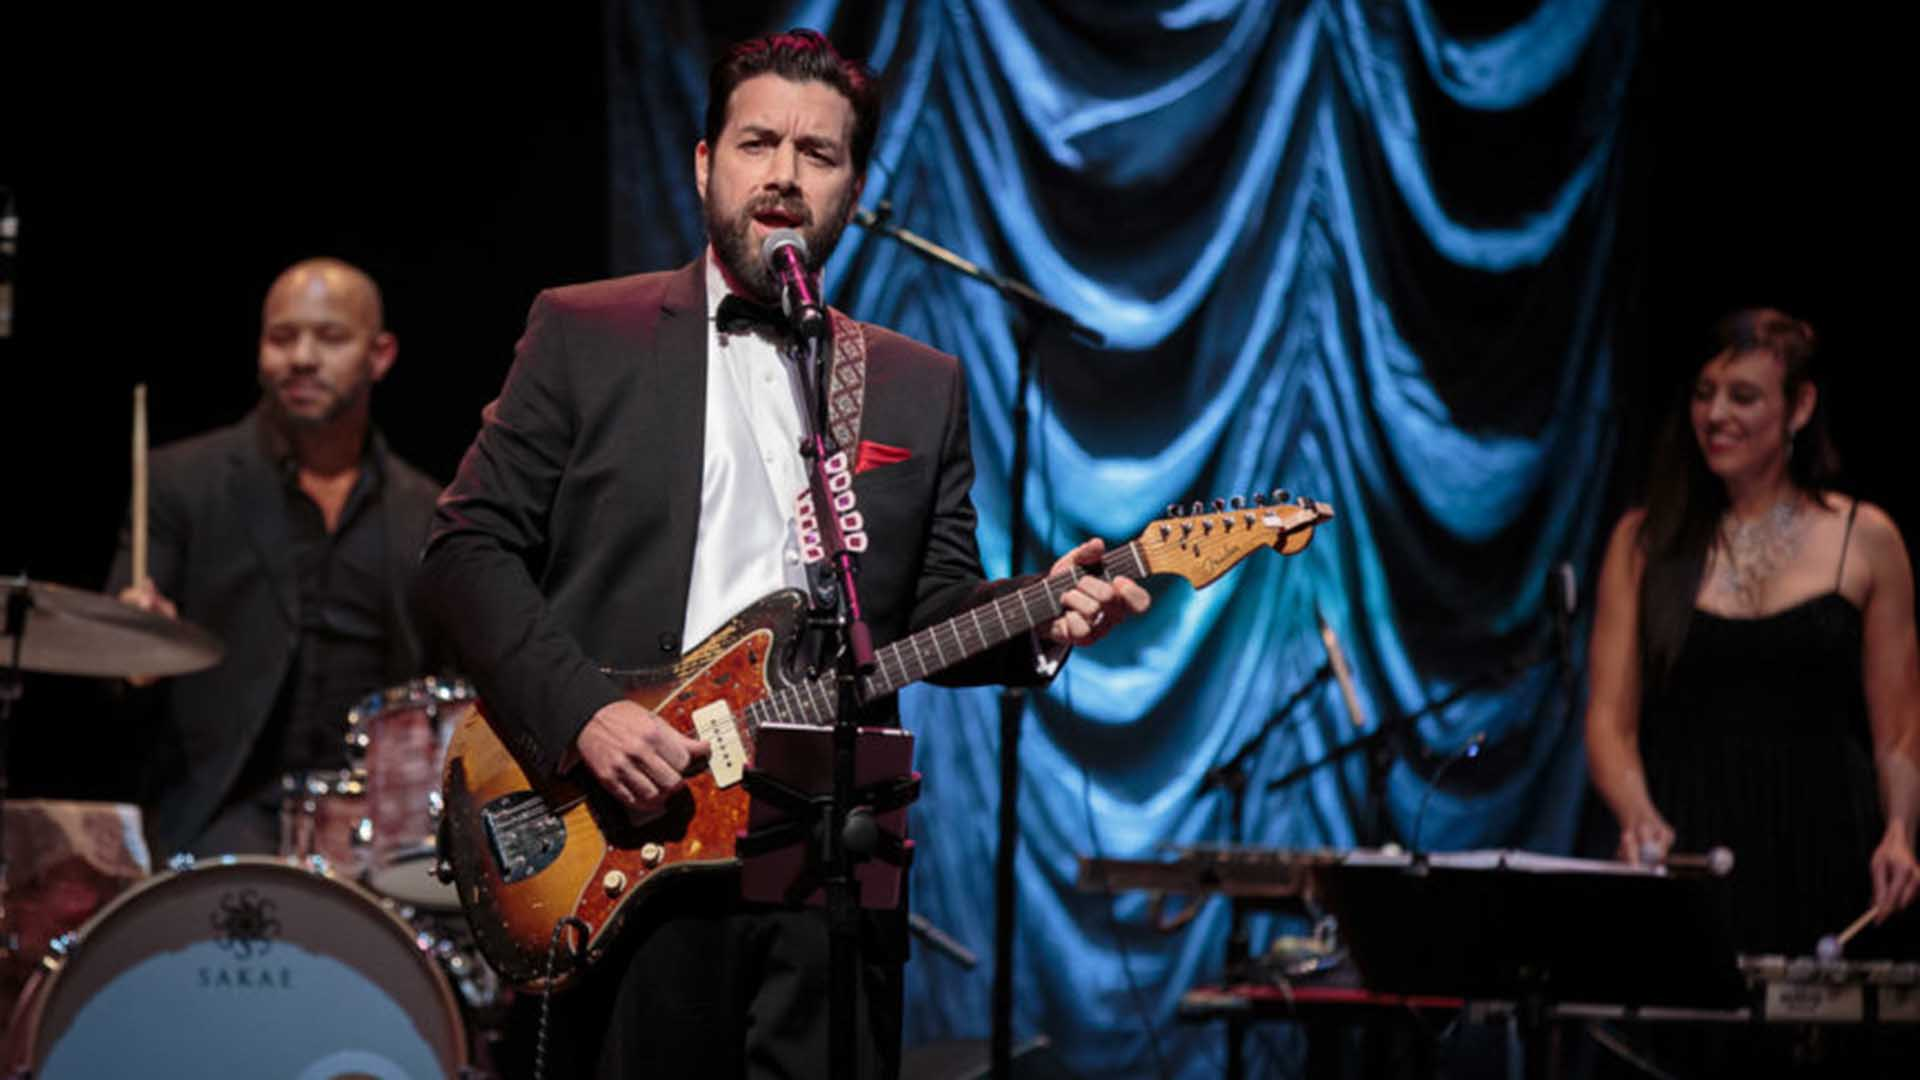 Image of Bob Schneider and the Moonlight Orchestra